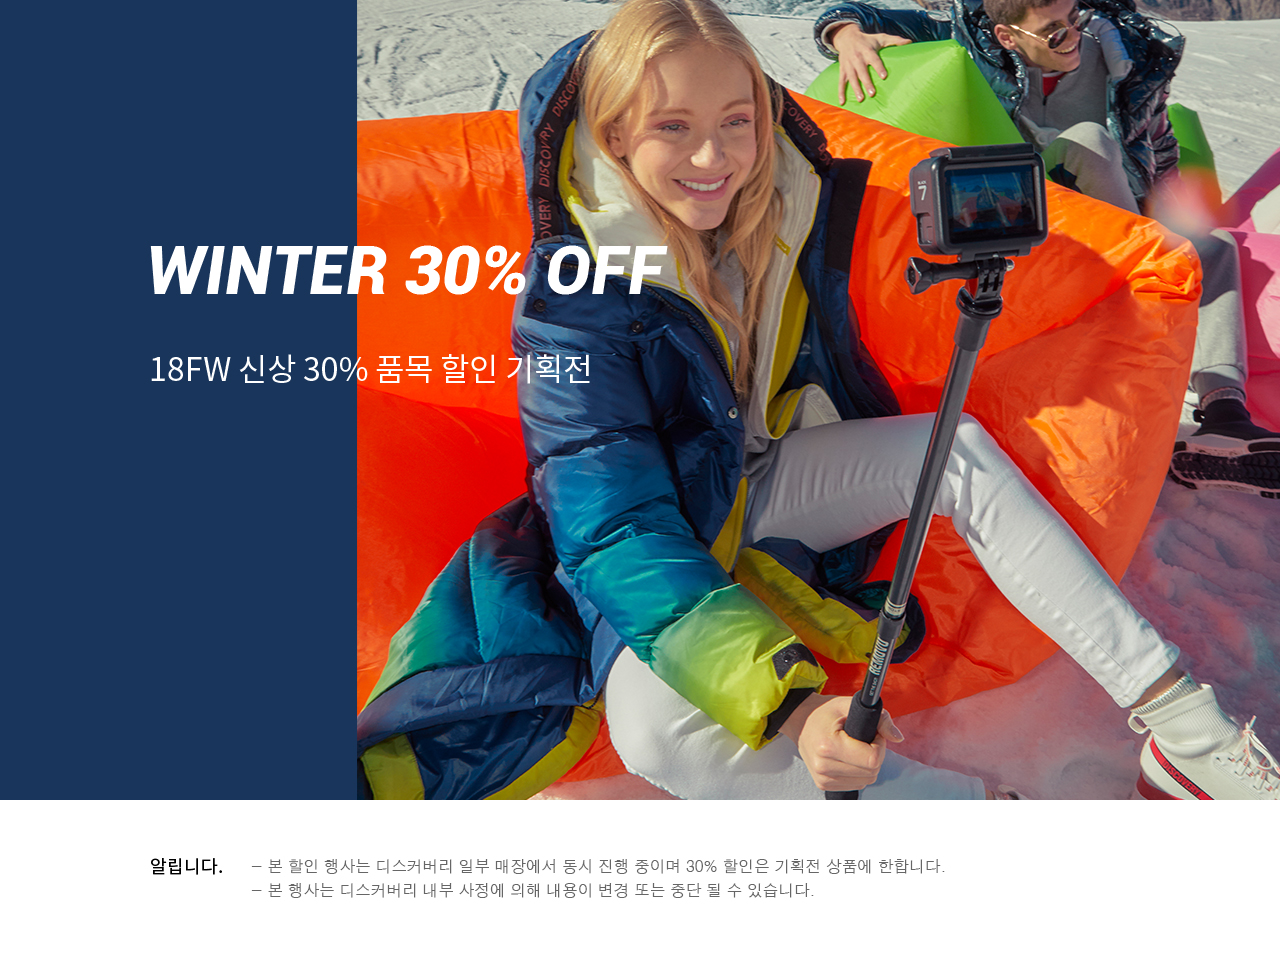 WINTER 30% OFF